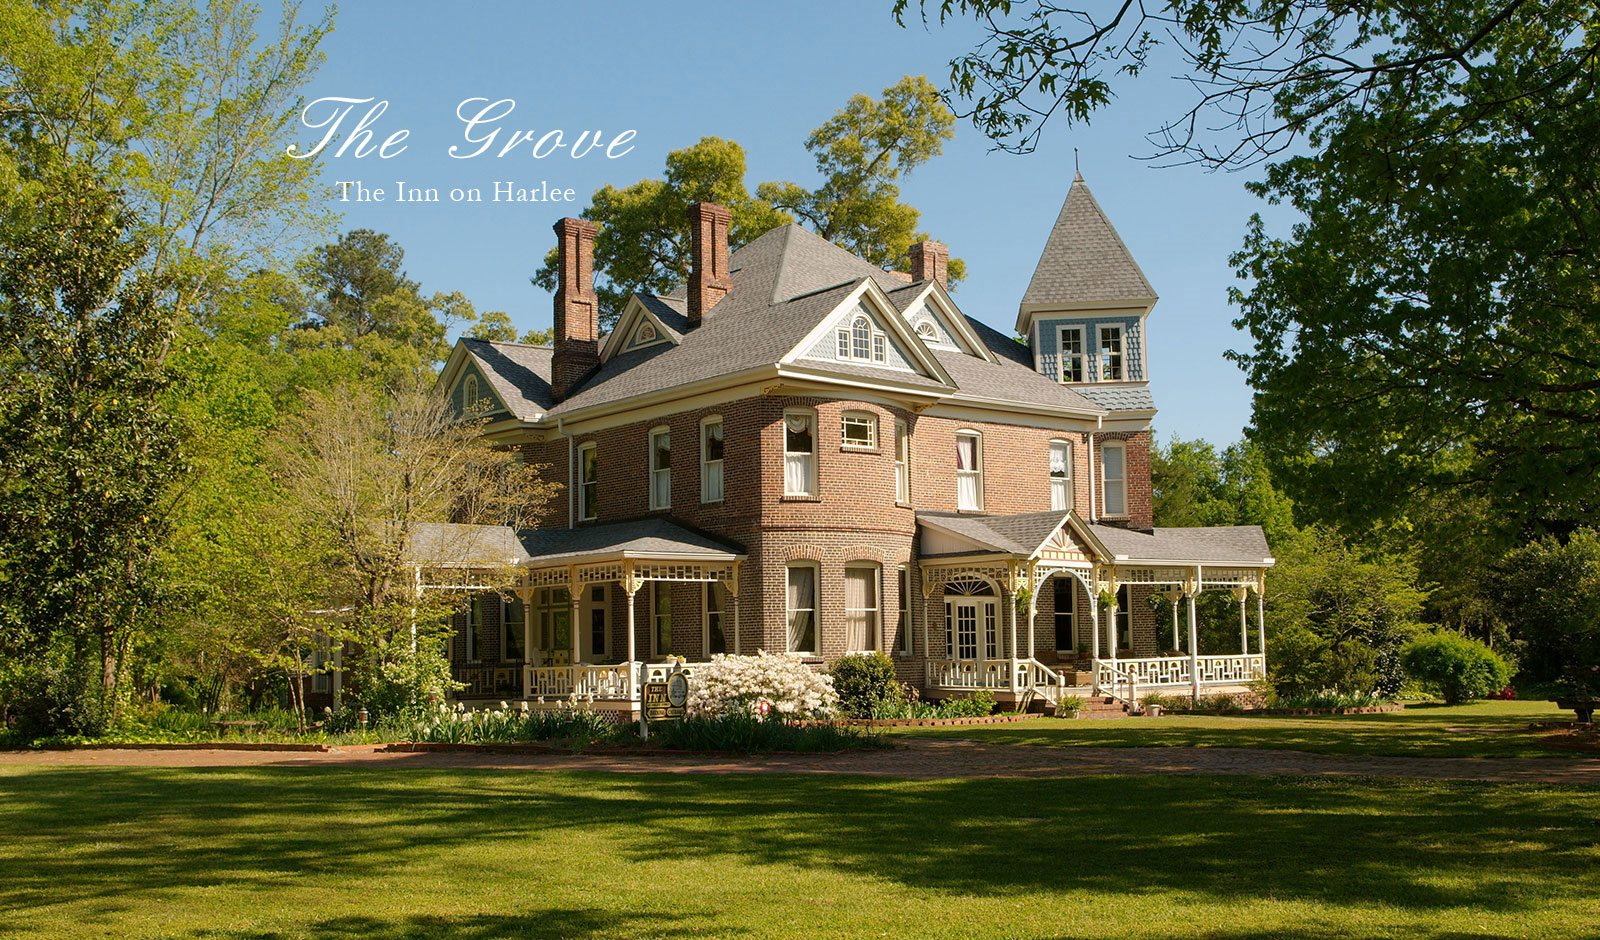 The Grove Bed and Breakfast